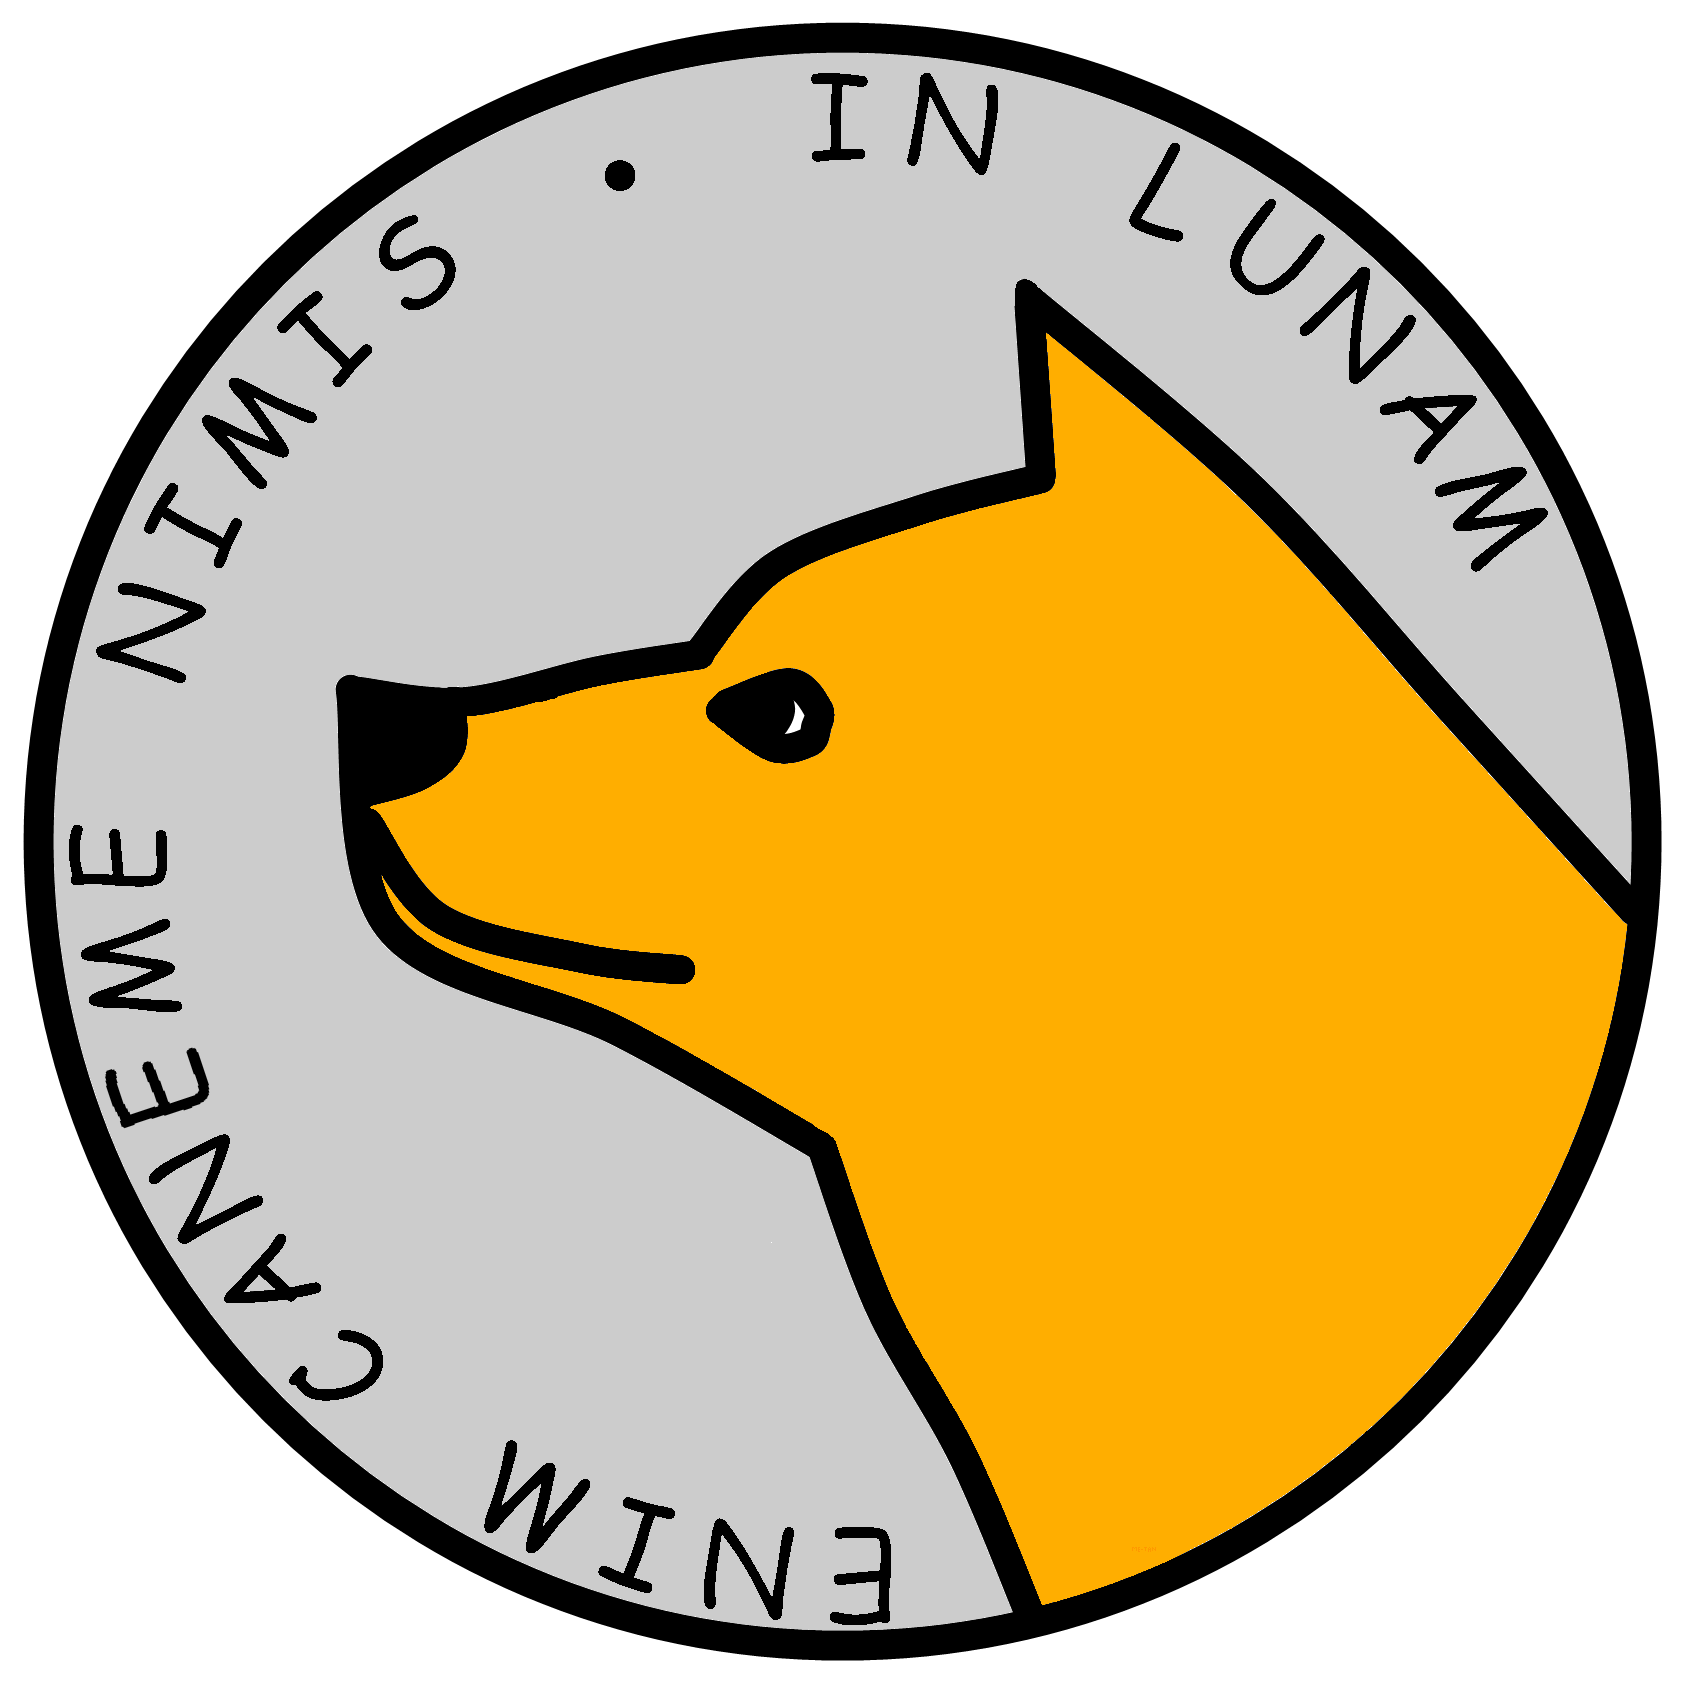 My take on the Dogecoin logo : dogecoin.